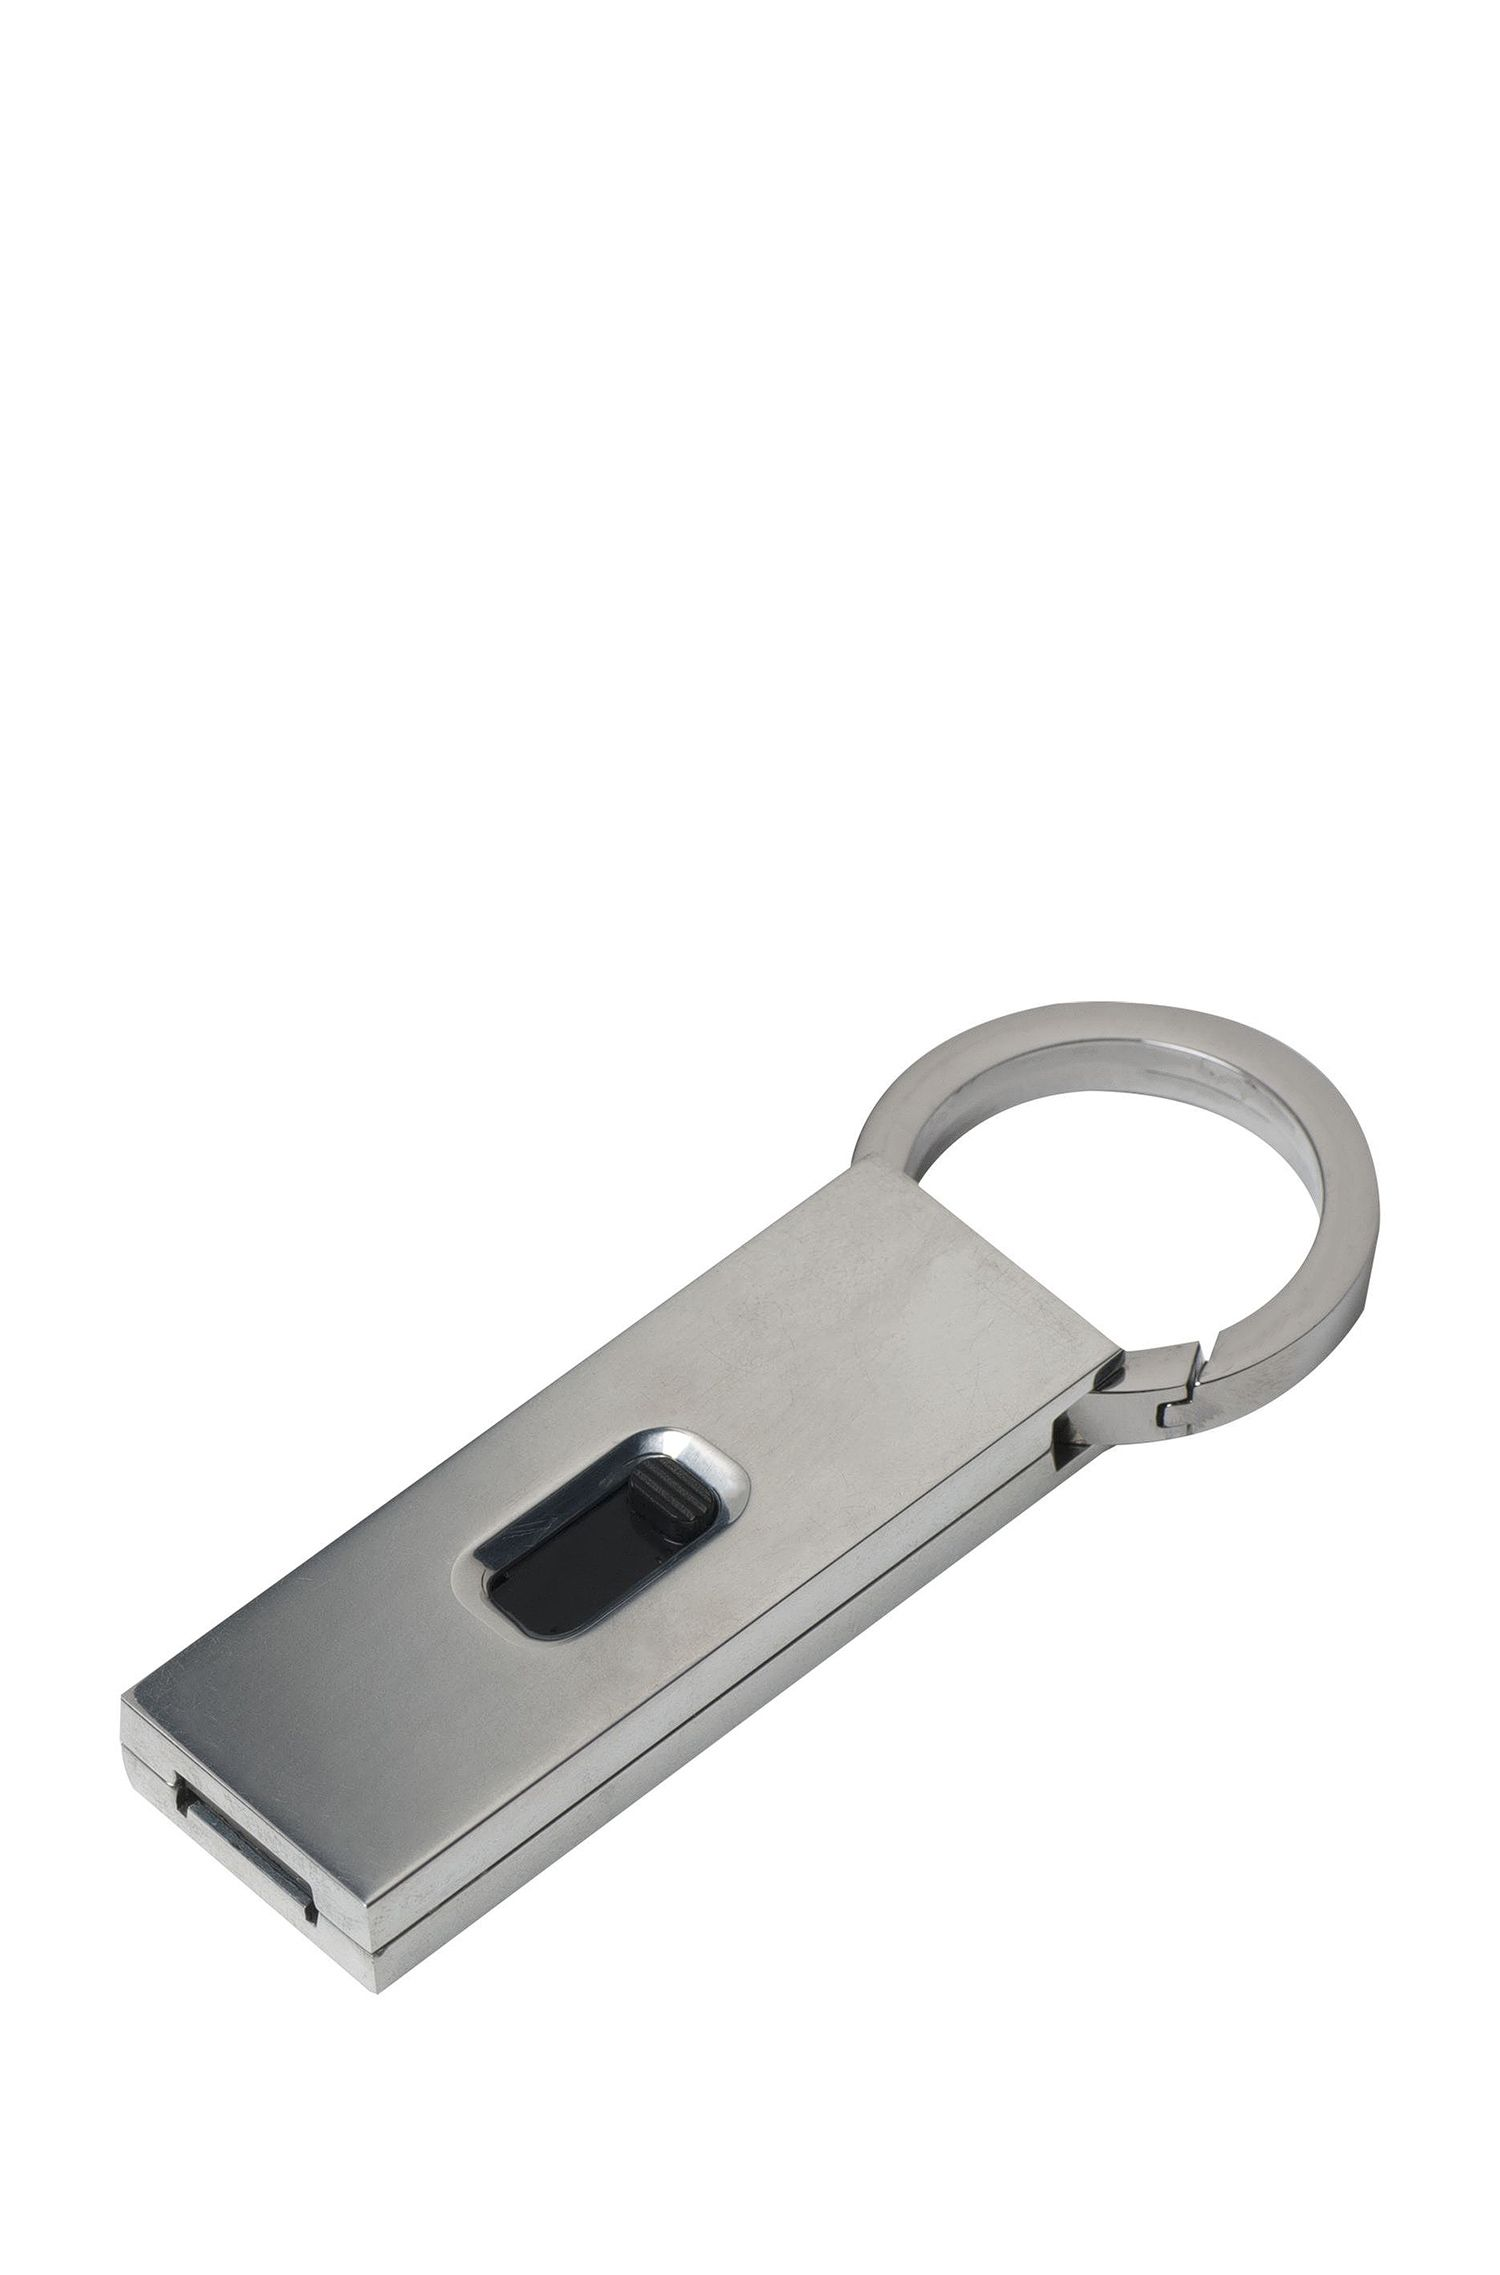 16GB USB stick in faux leather, Black